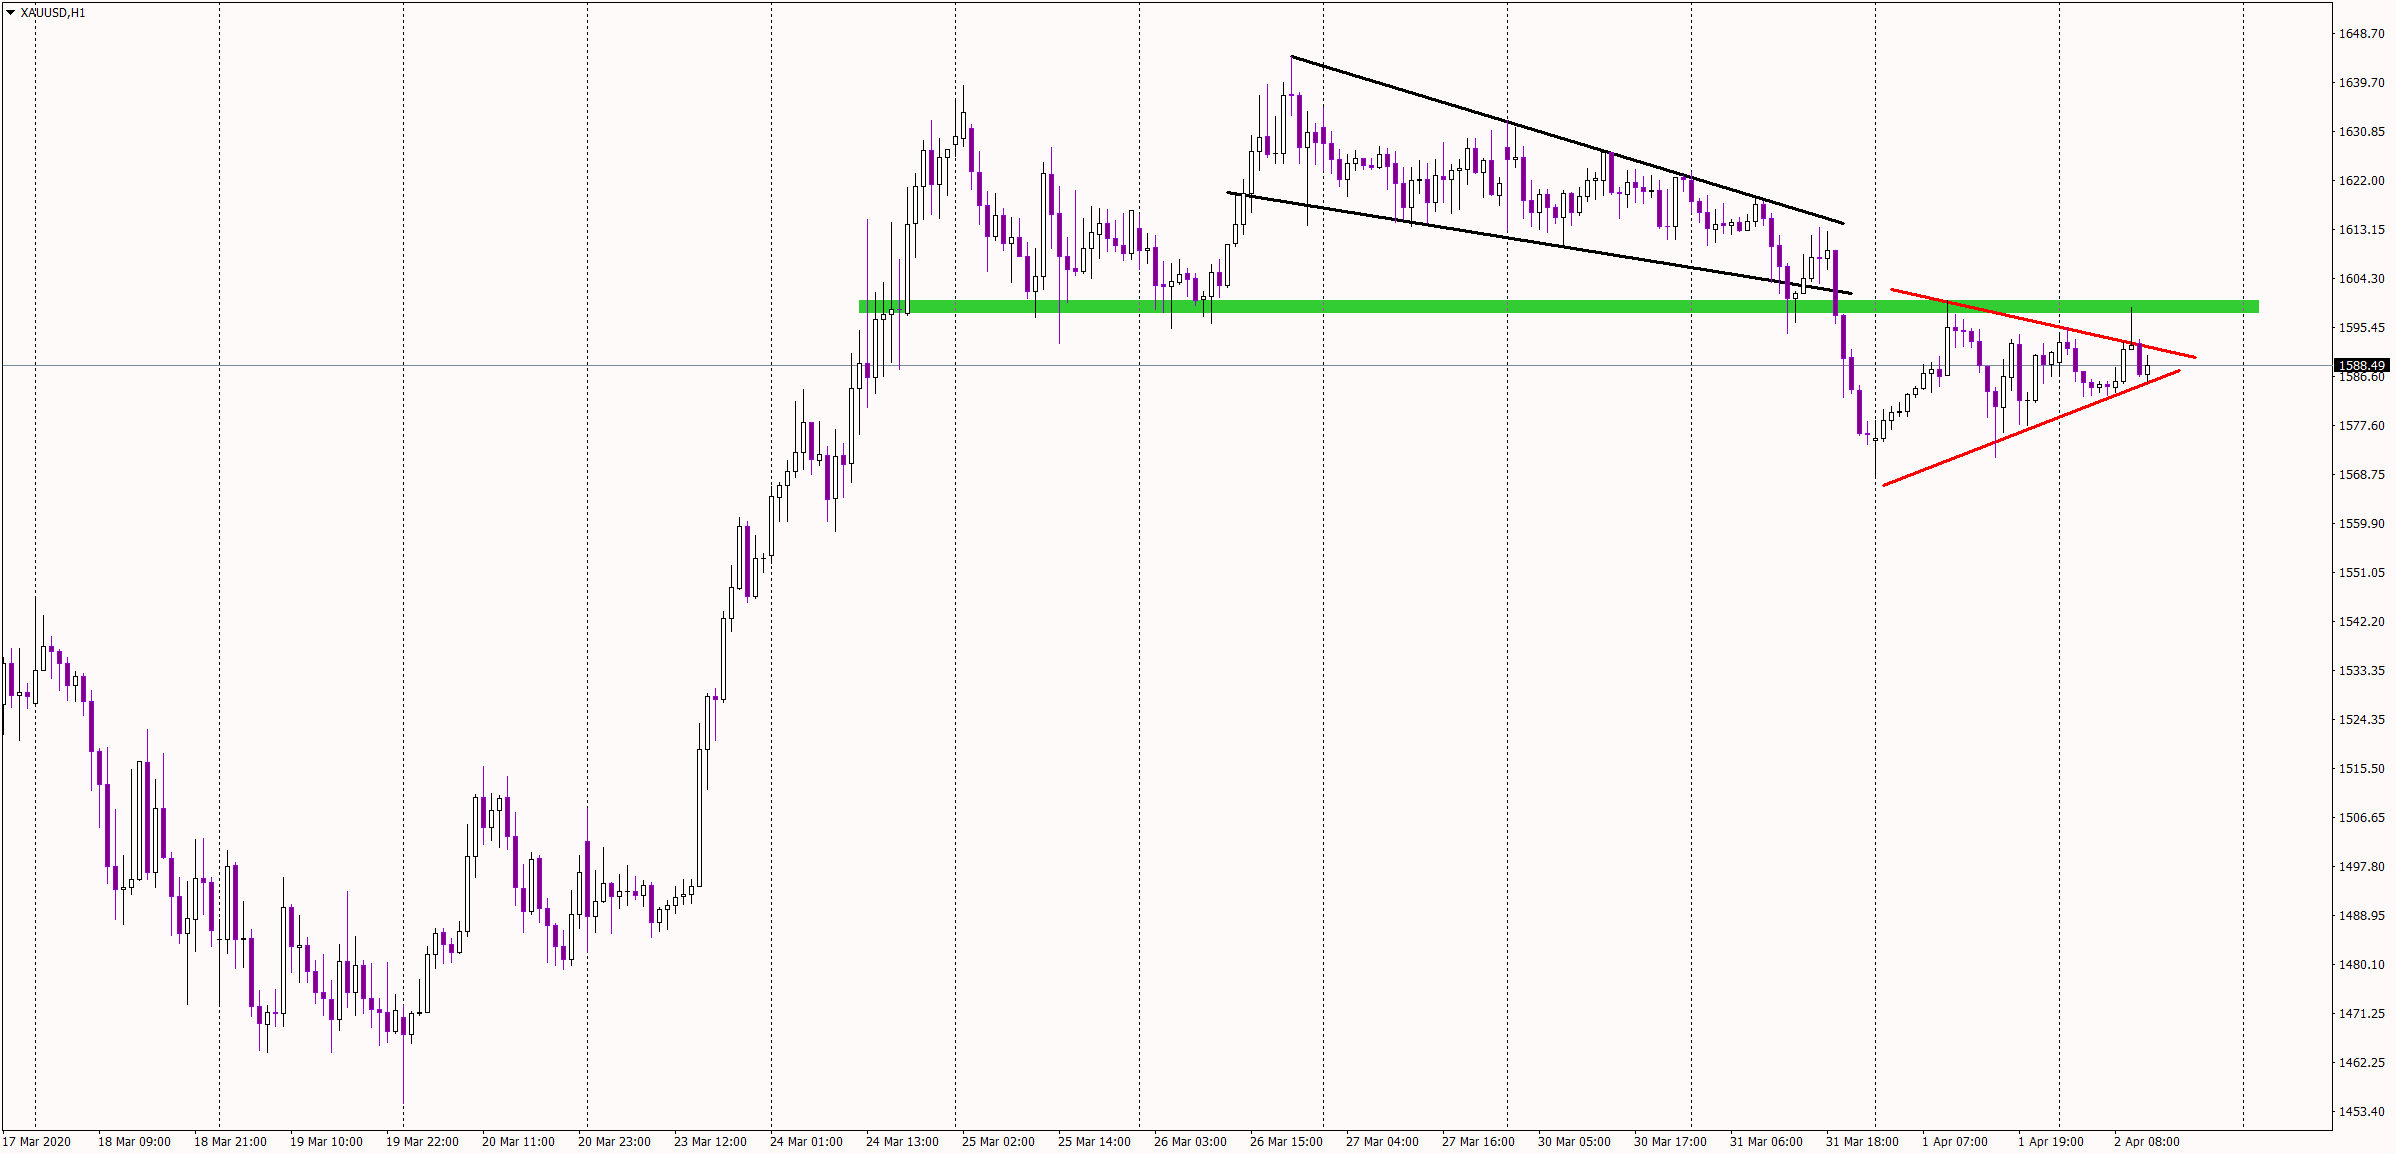 Gold 1 hour chart